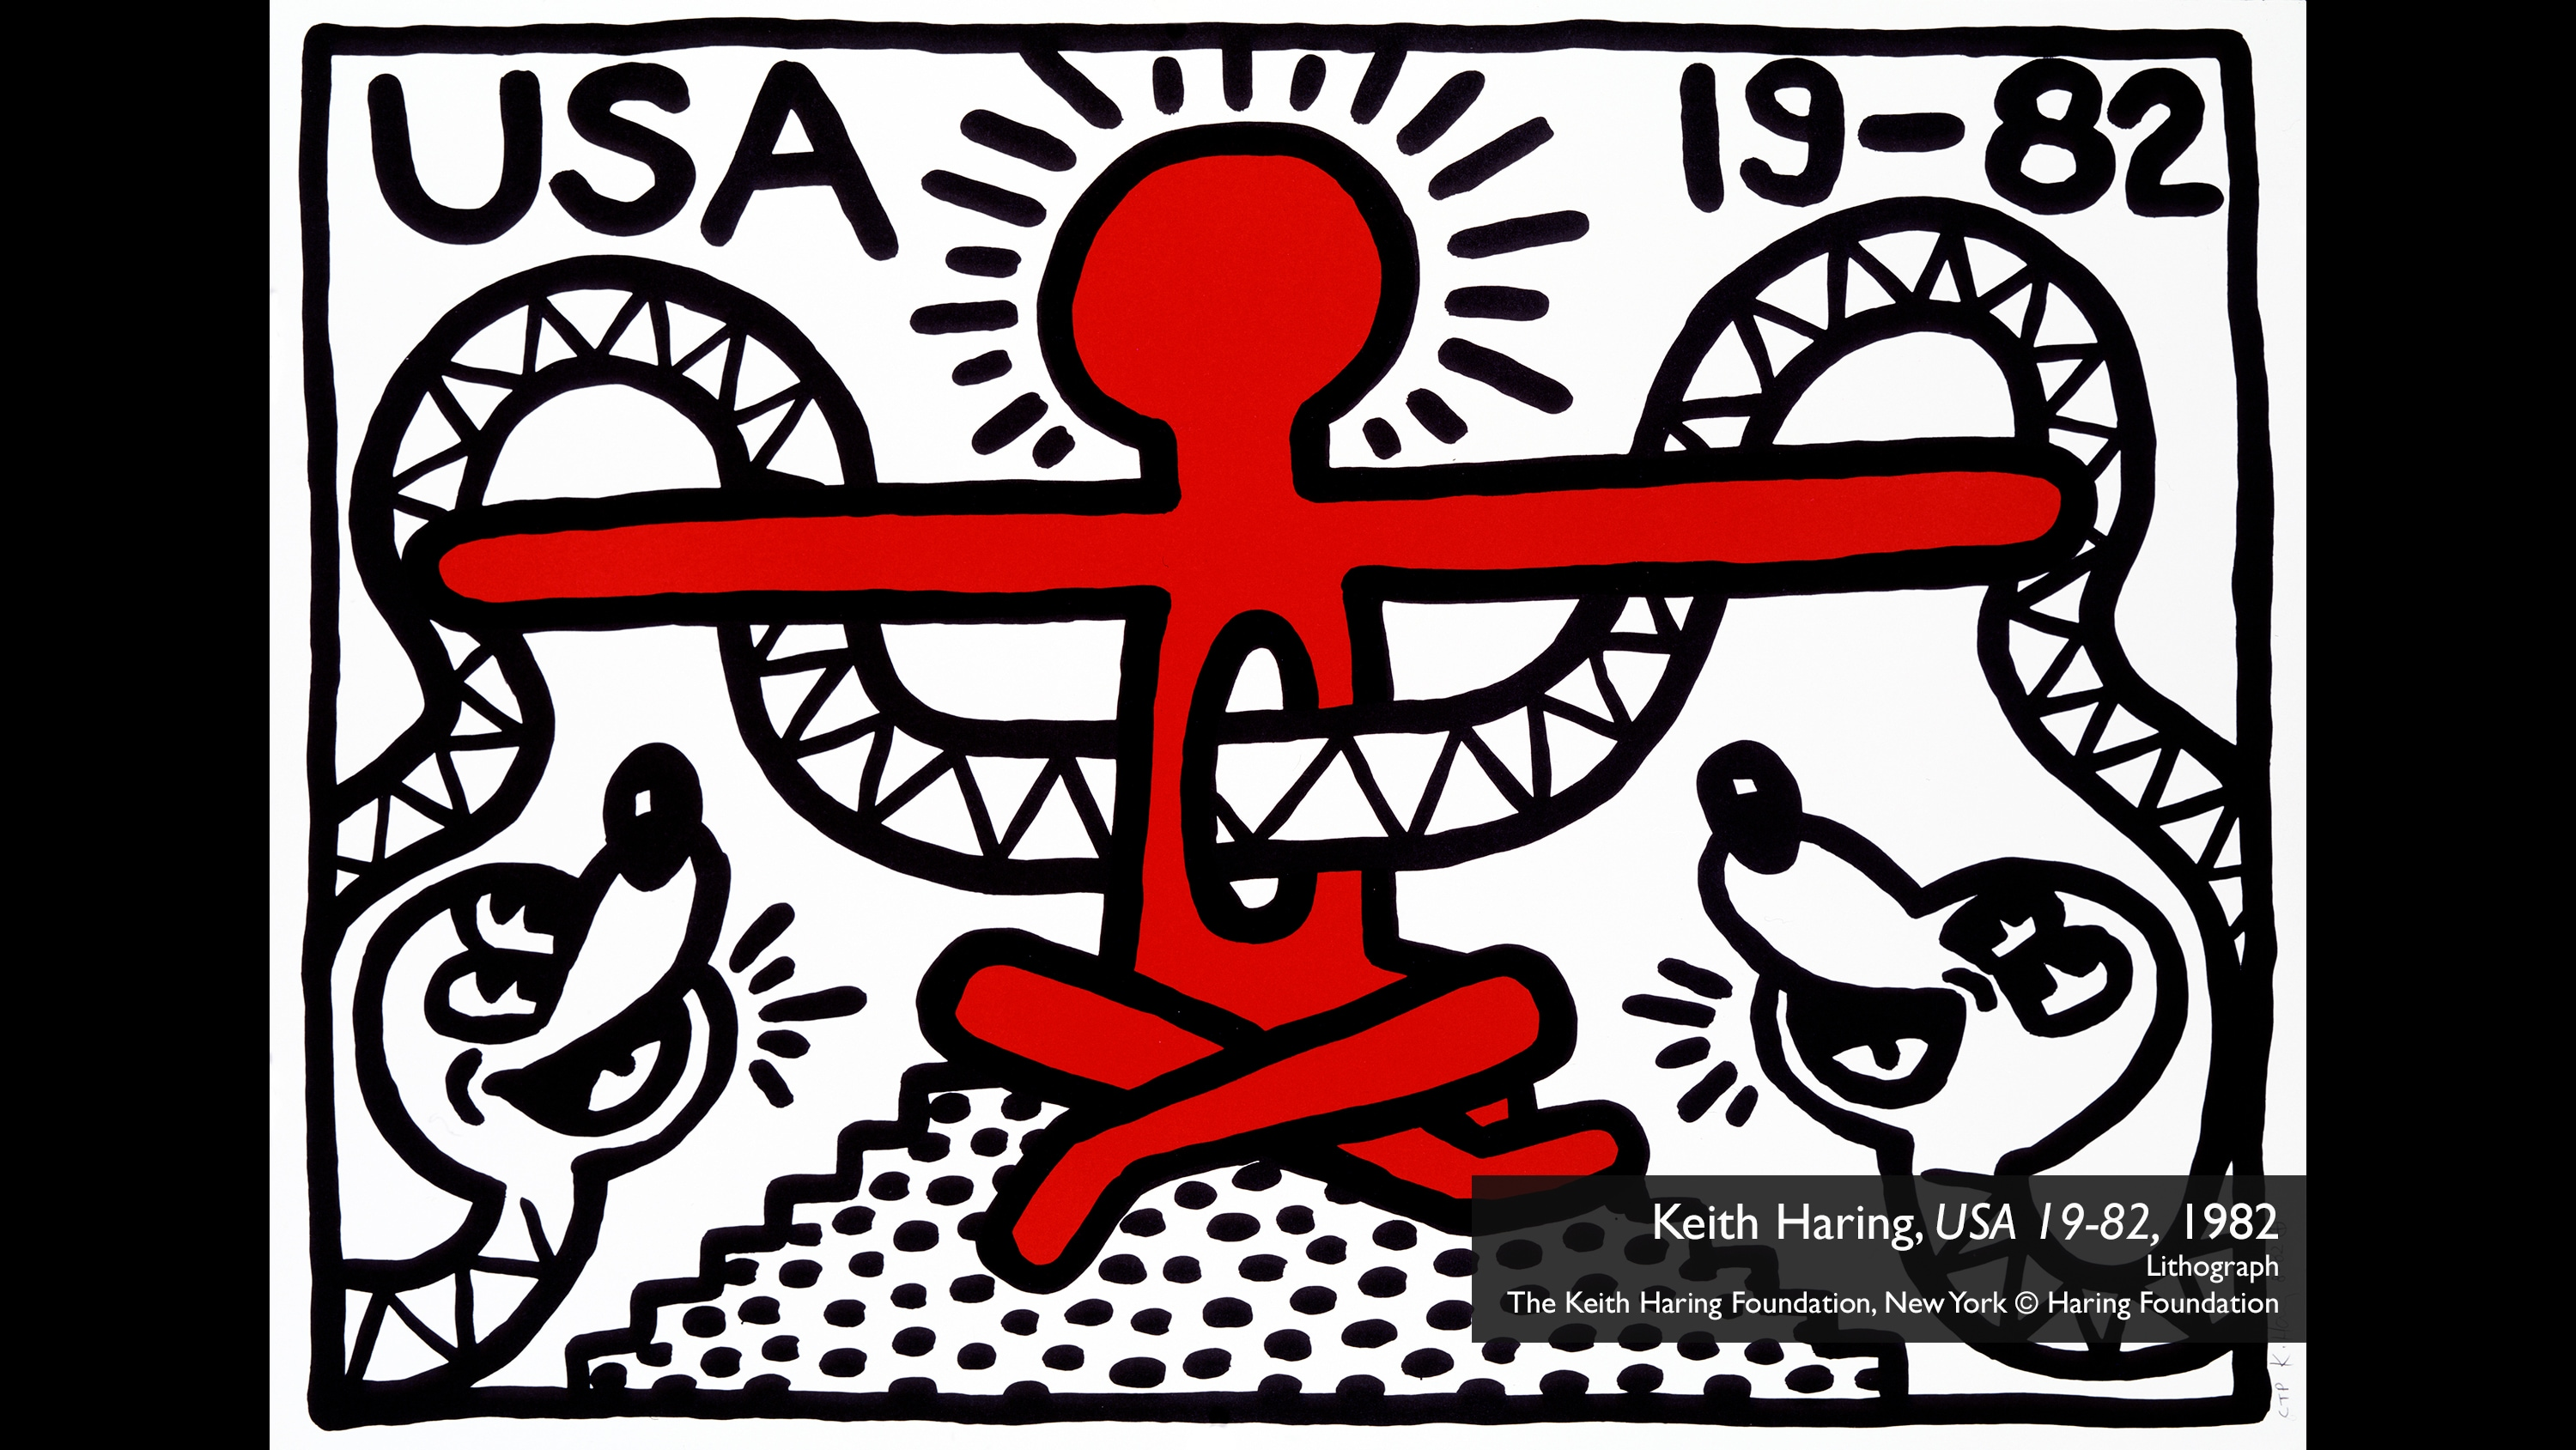 Keith Haring, USA 19-82, 1982. Lithograph The Keith Haring Foundation, New York © Haring Foundation